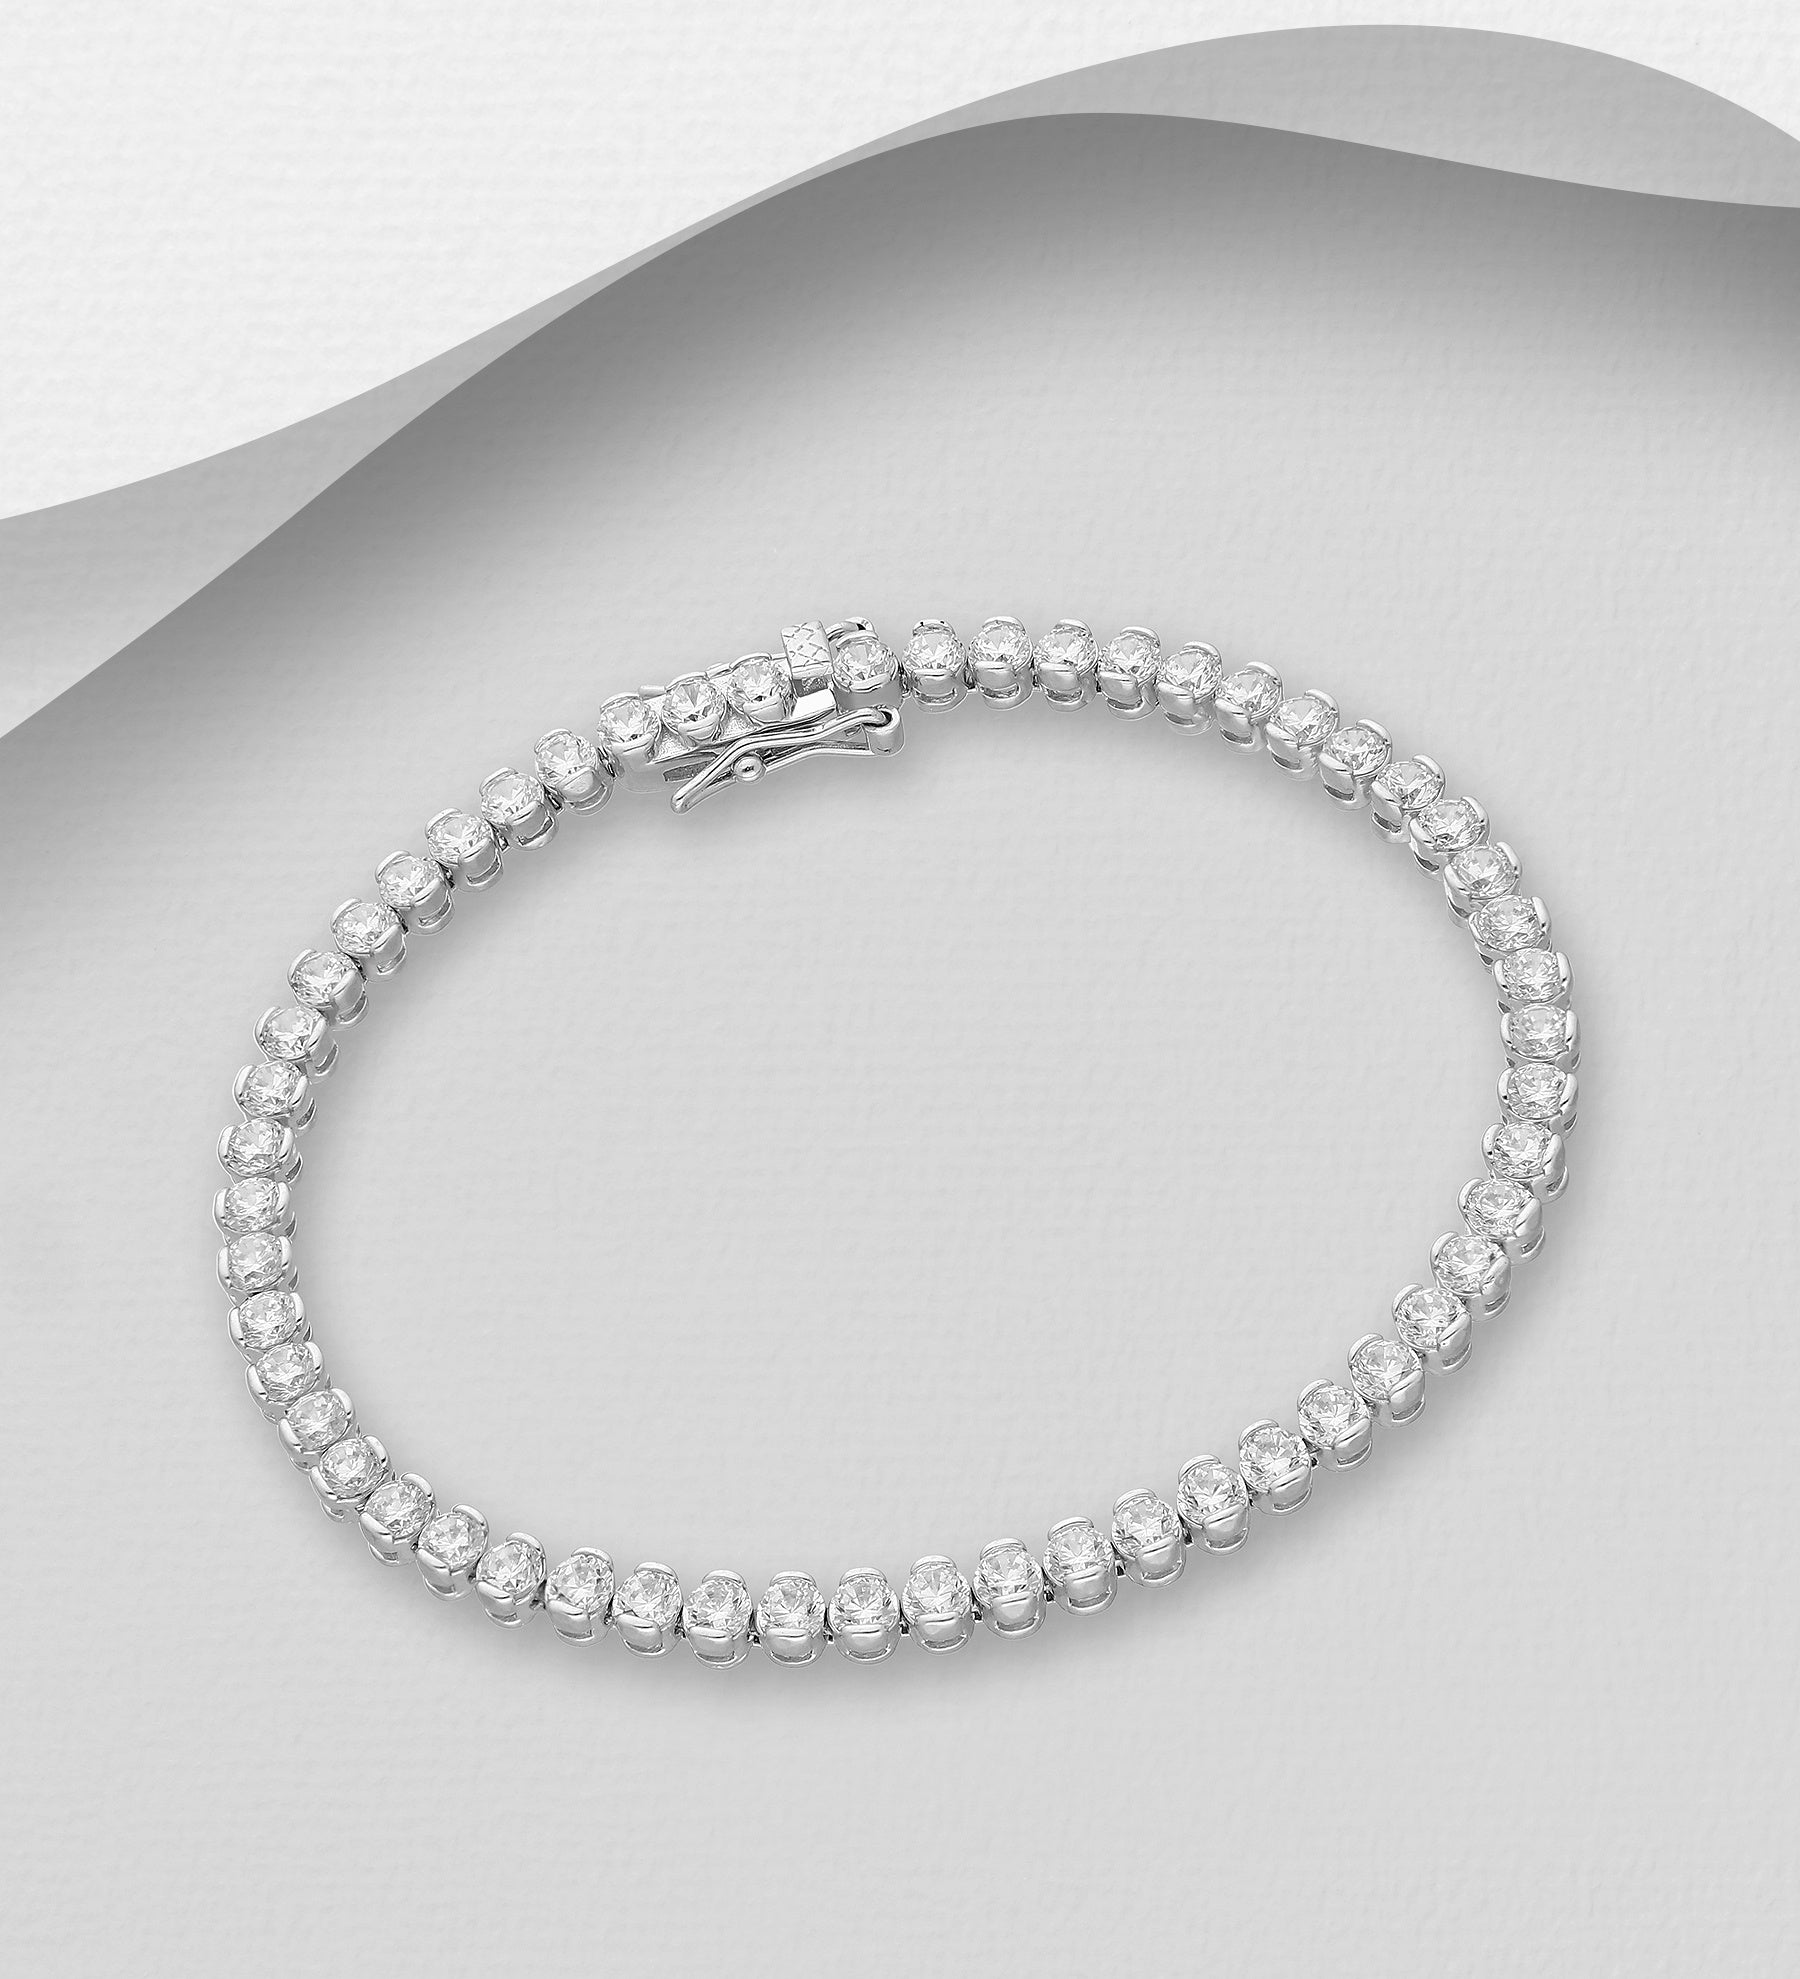 Brilliant CZ Tennis Bracelet 4mm